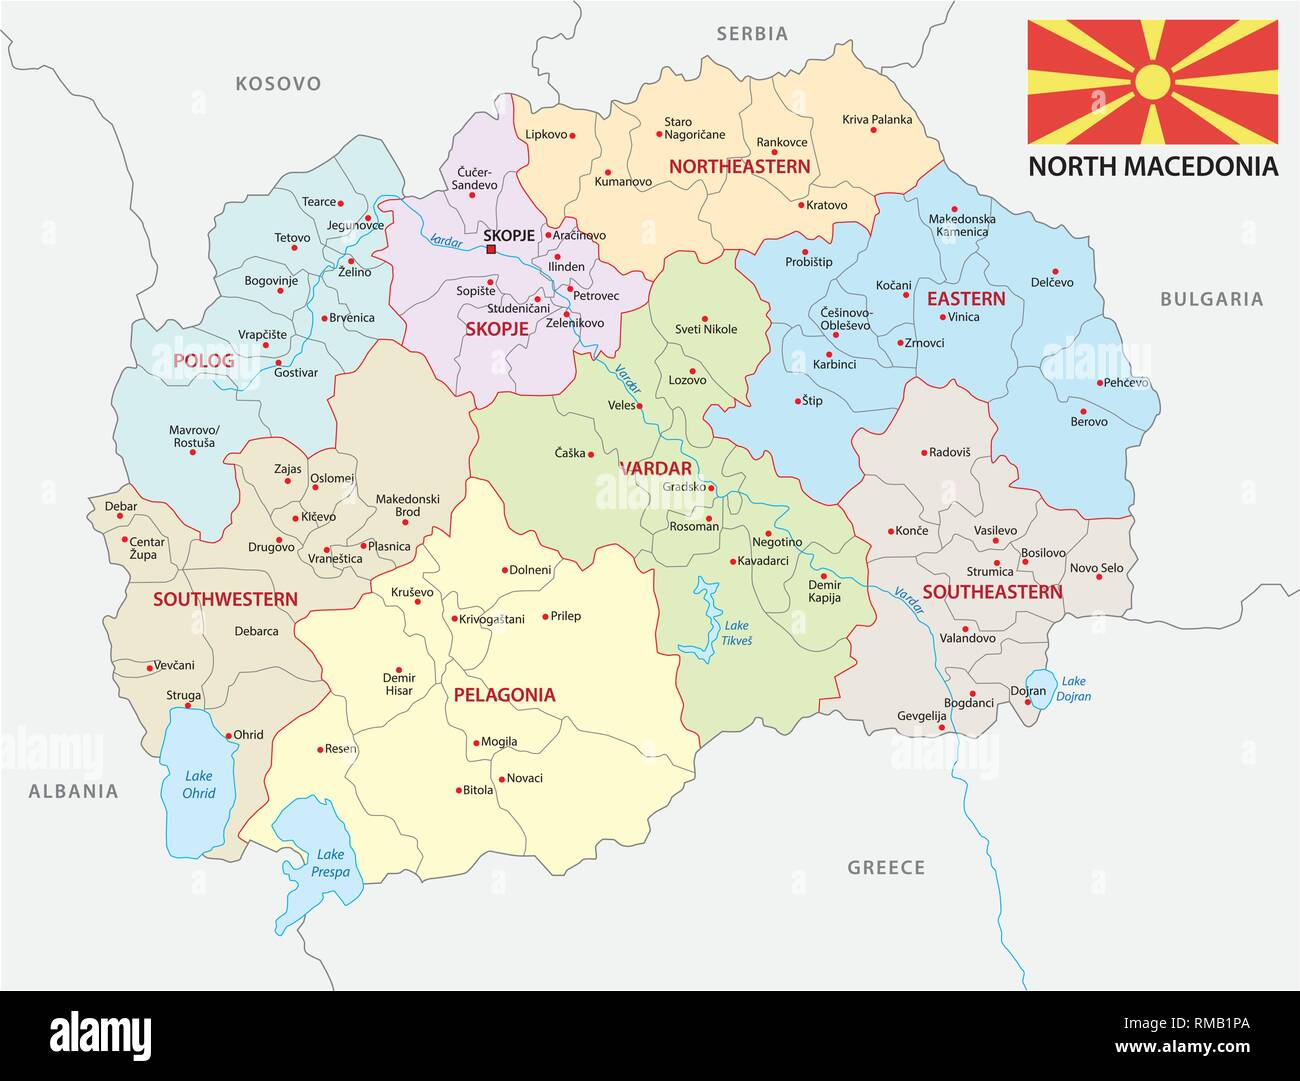 north macedonia administrative and political vector map with ... on cyprus on map, isreal on map, asia minor on map, jordan on map, athens on map, gaul on map, malta on map, constantinople on map, persian empire on map, belarus on map, san marino on map, greece on map, carthage on map, romania on map, peloponnese on map, albania on map, crete on map, moldova on map, armenia on map, aegean sea on map,